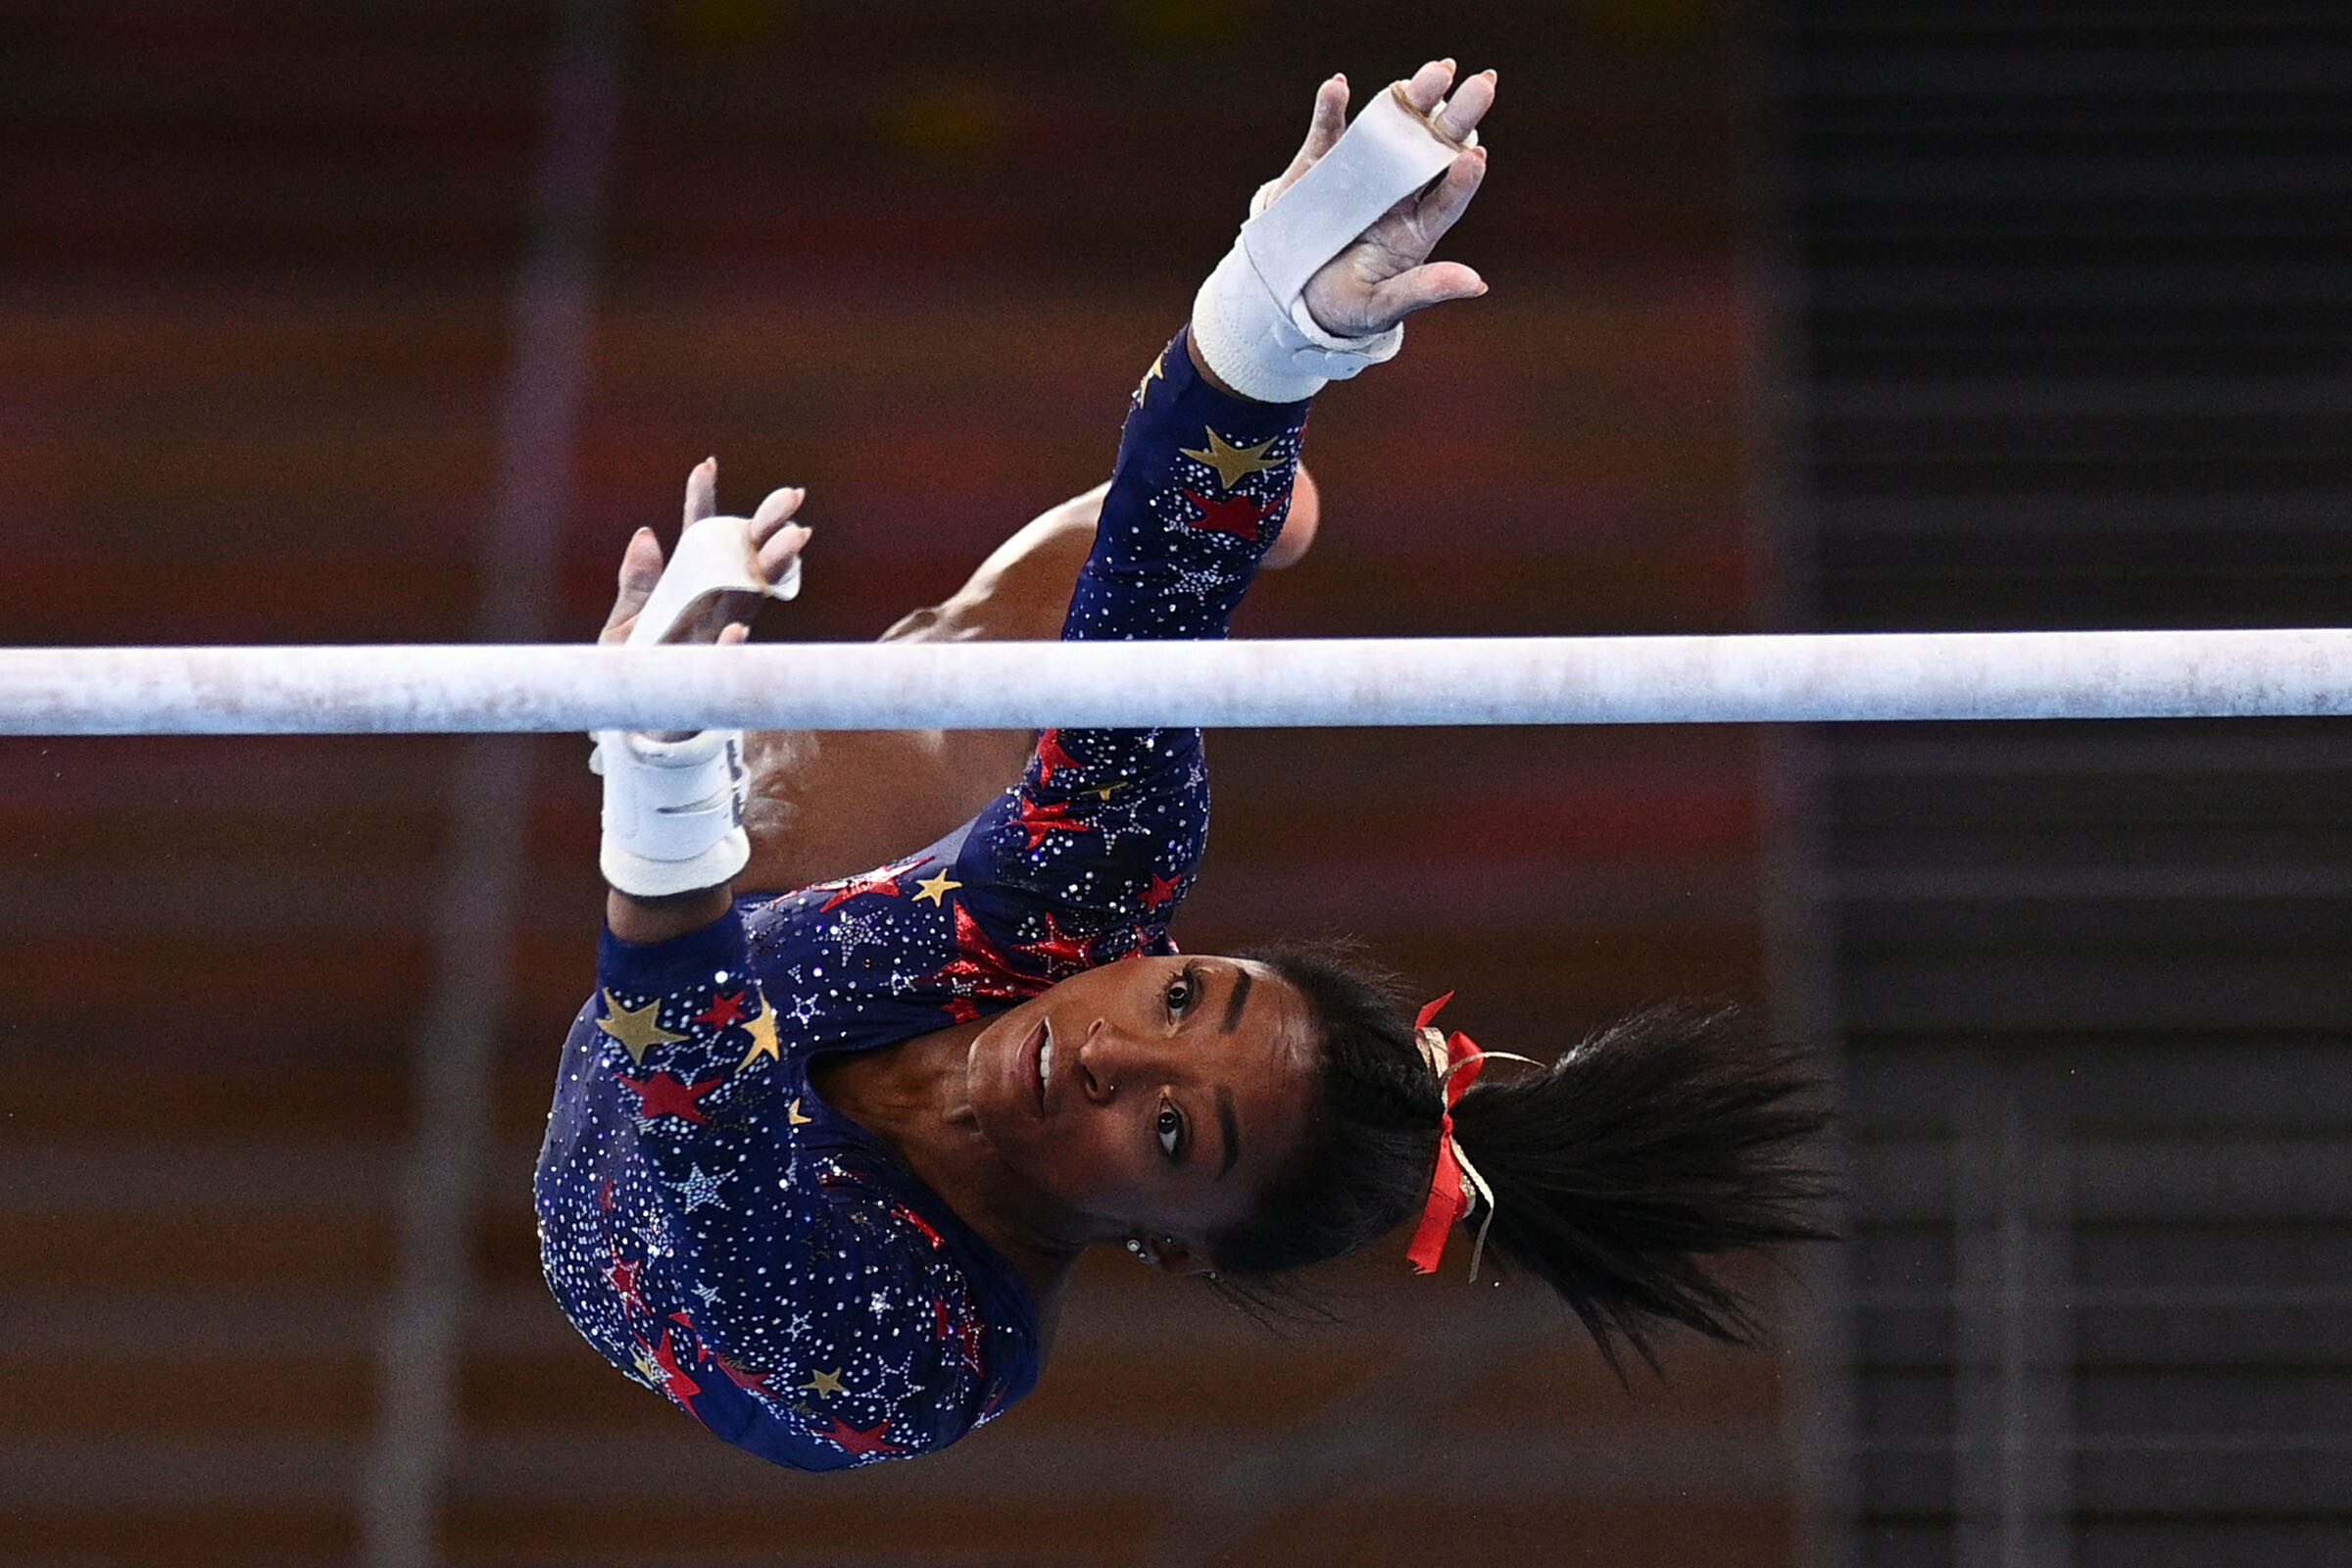 Simone Biles doesn't need more medals. She returned to the Olympics for something much more impactful